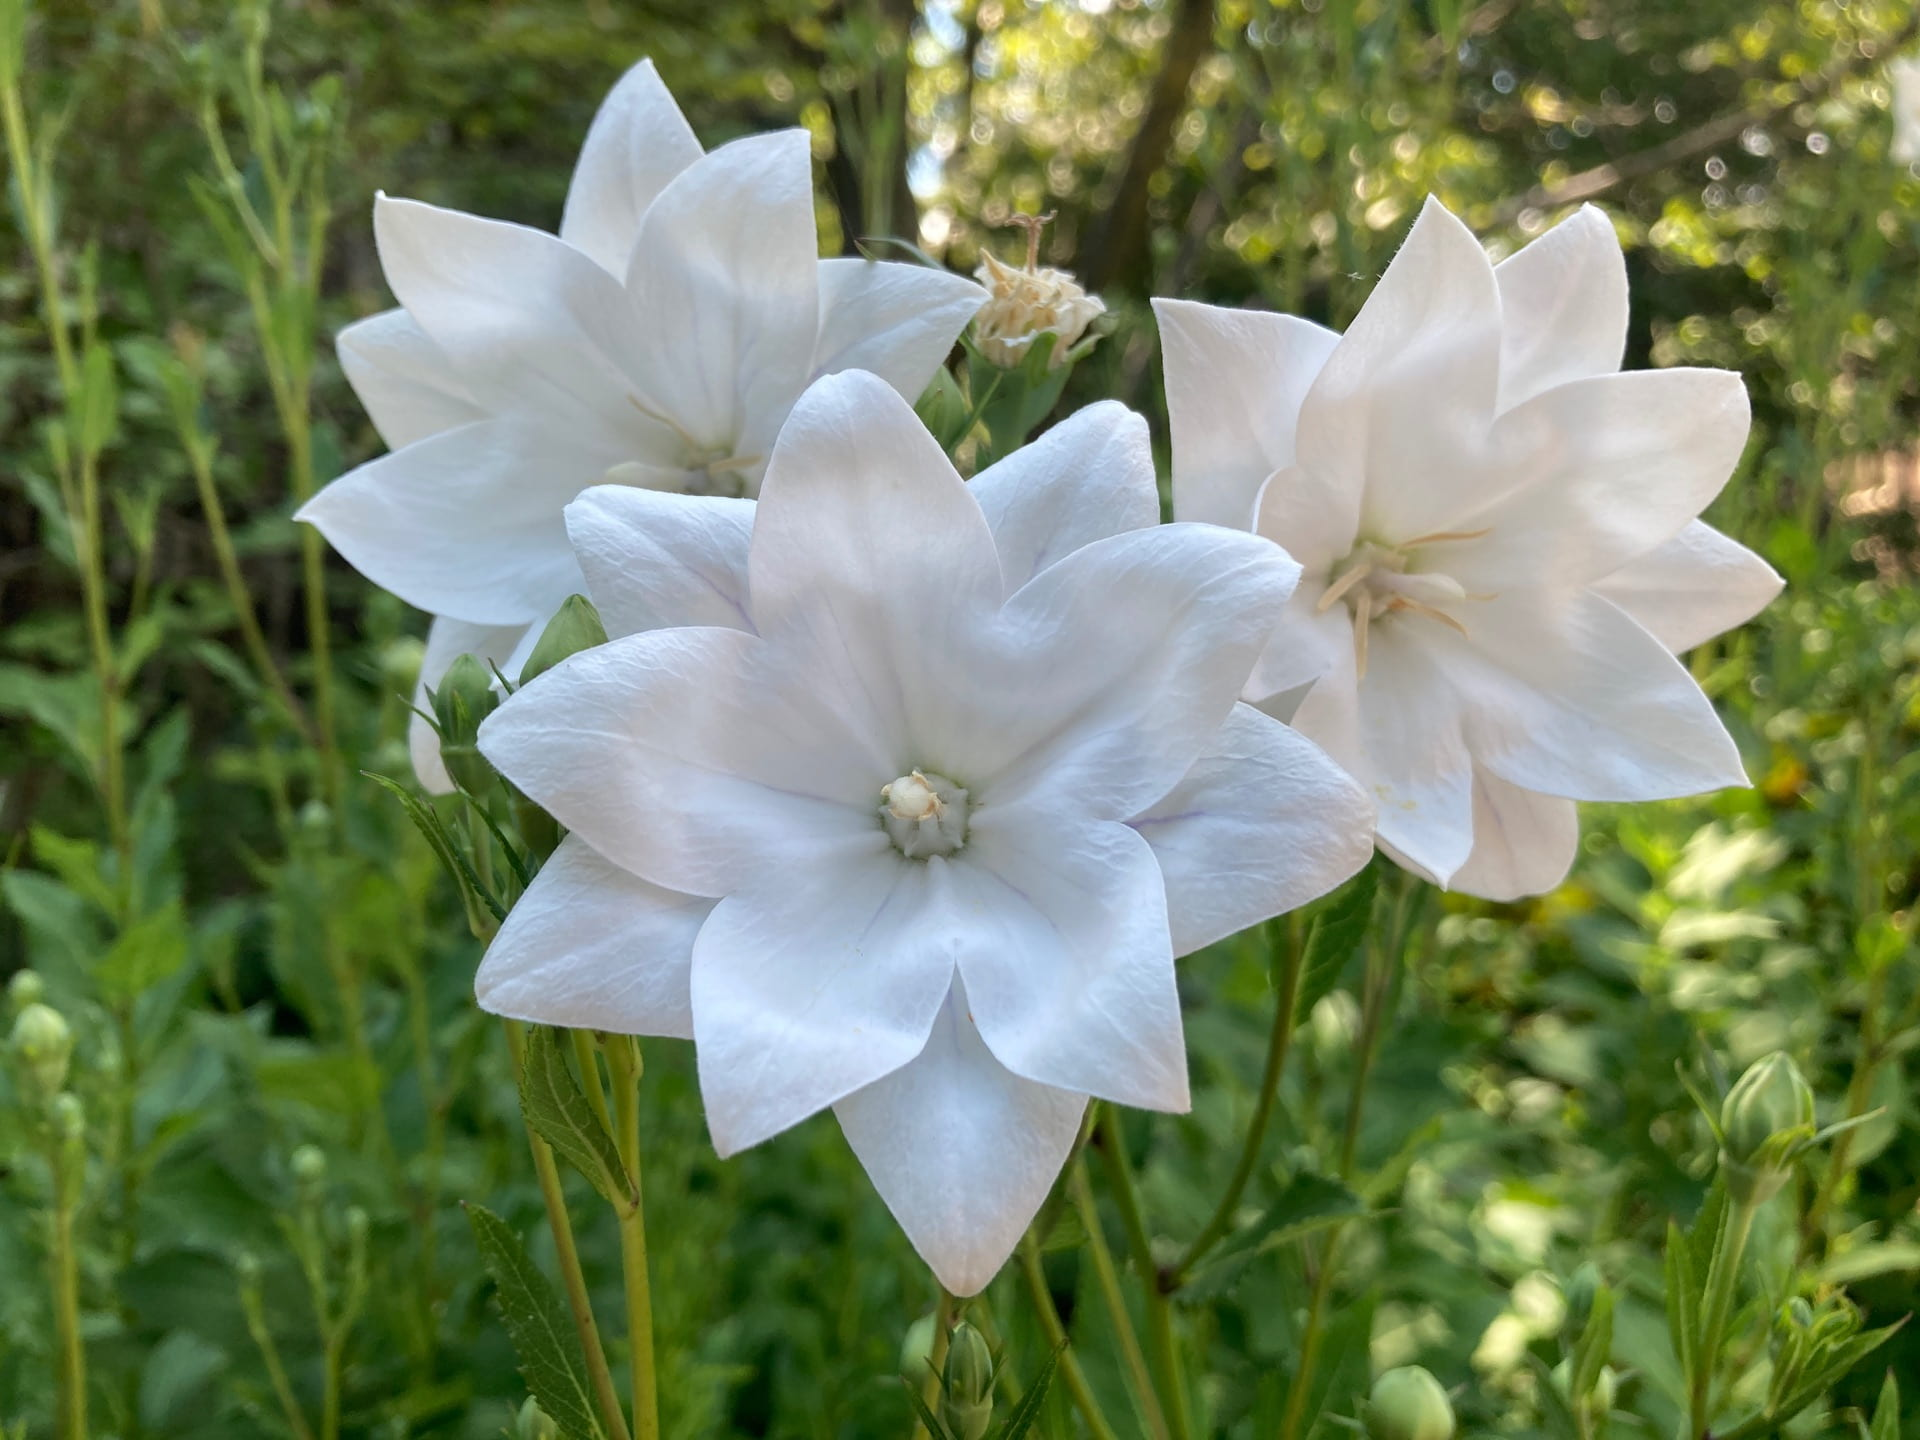 Balloon flower, Platycodon grandiflorus 'Astra Double White', blooms outside of Leidy Labs.